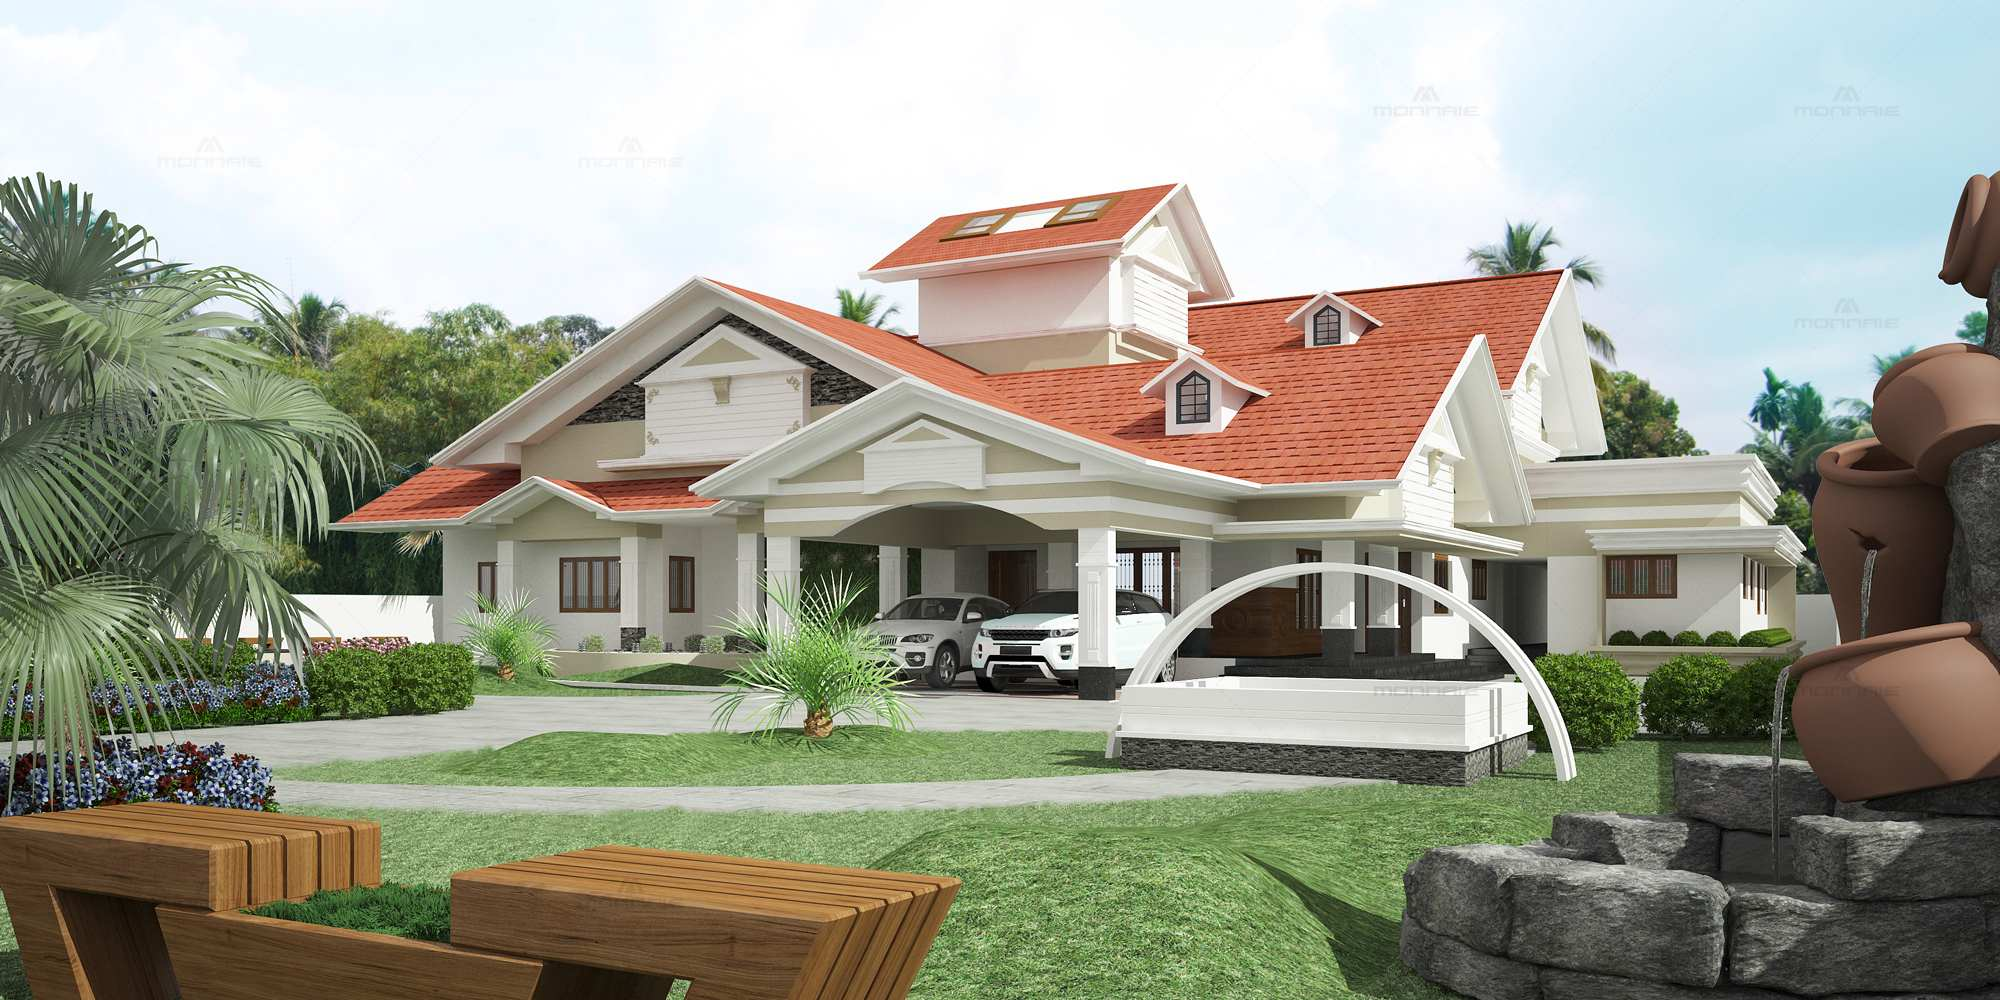 Best Architects in Kerala | Residential architecture house designs